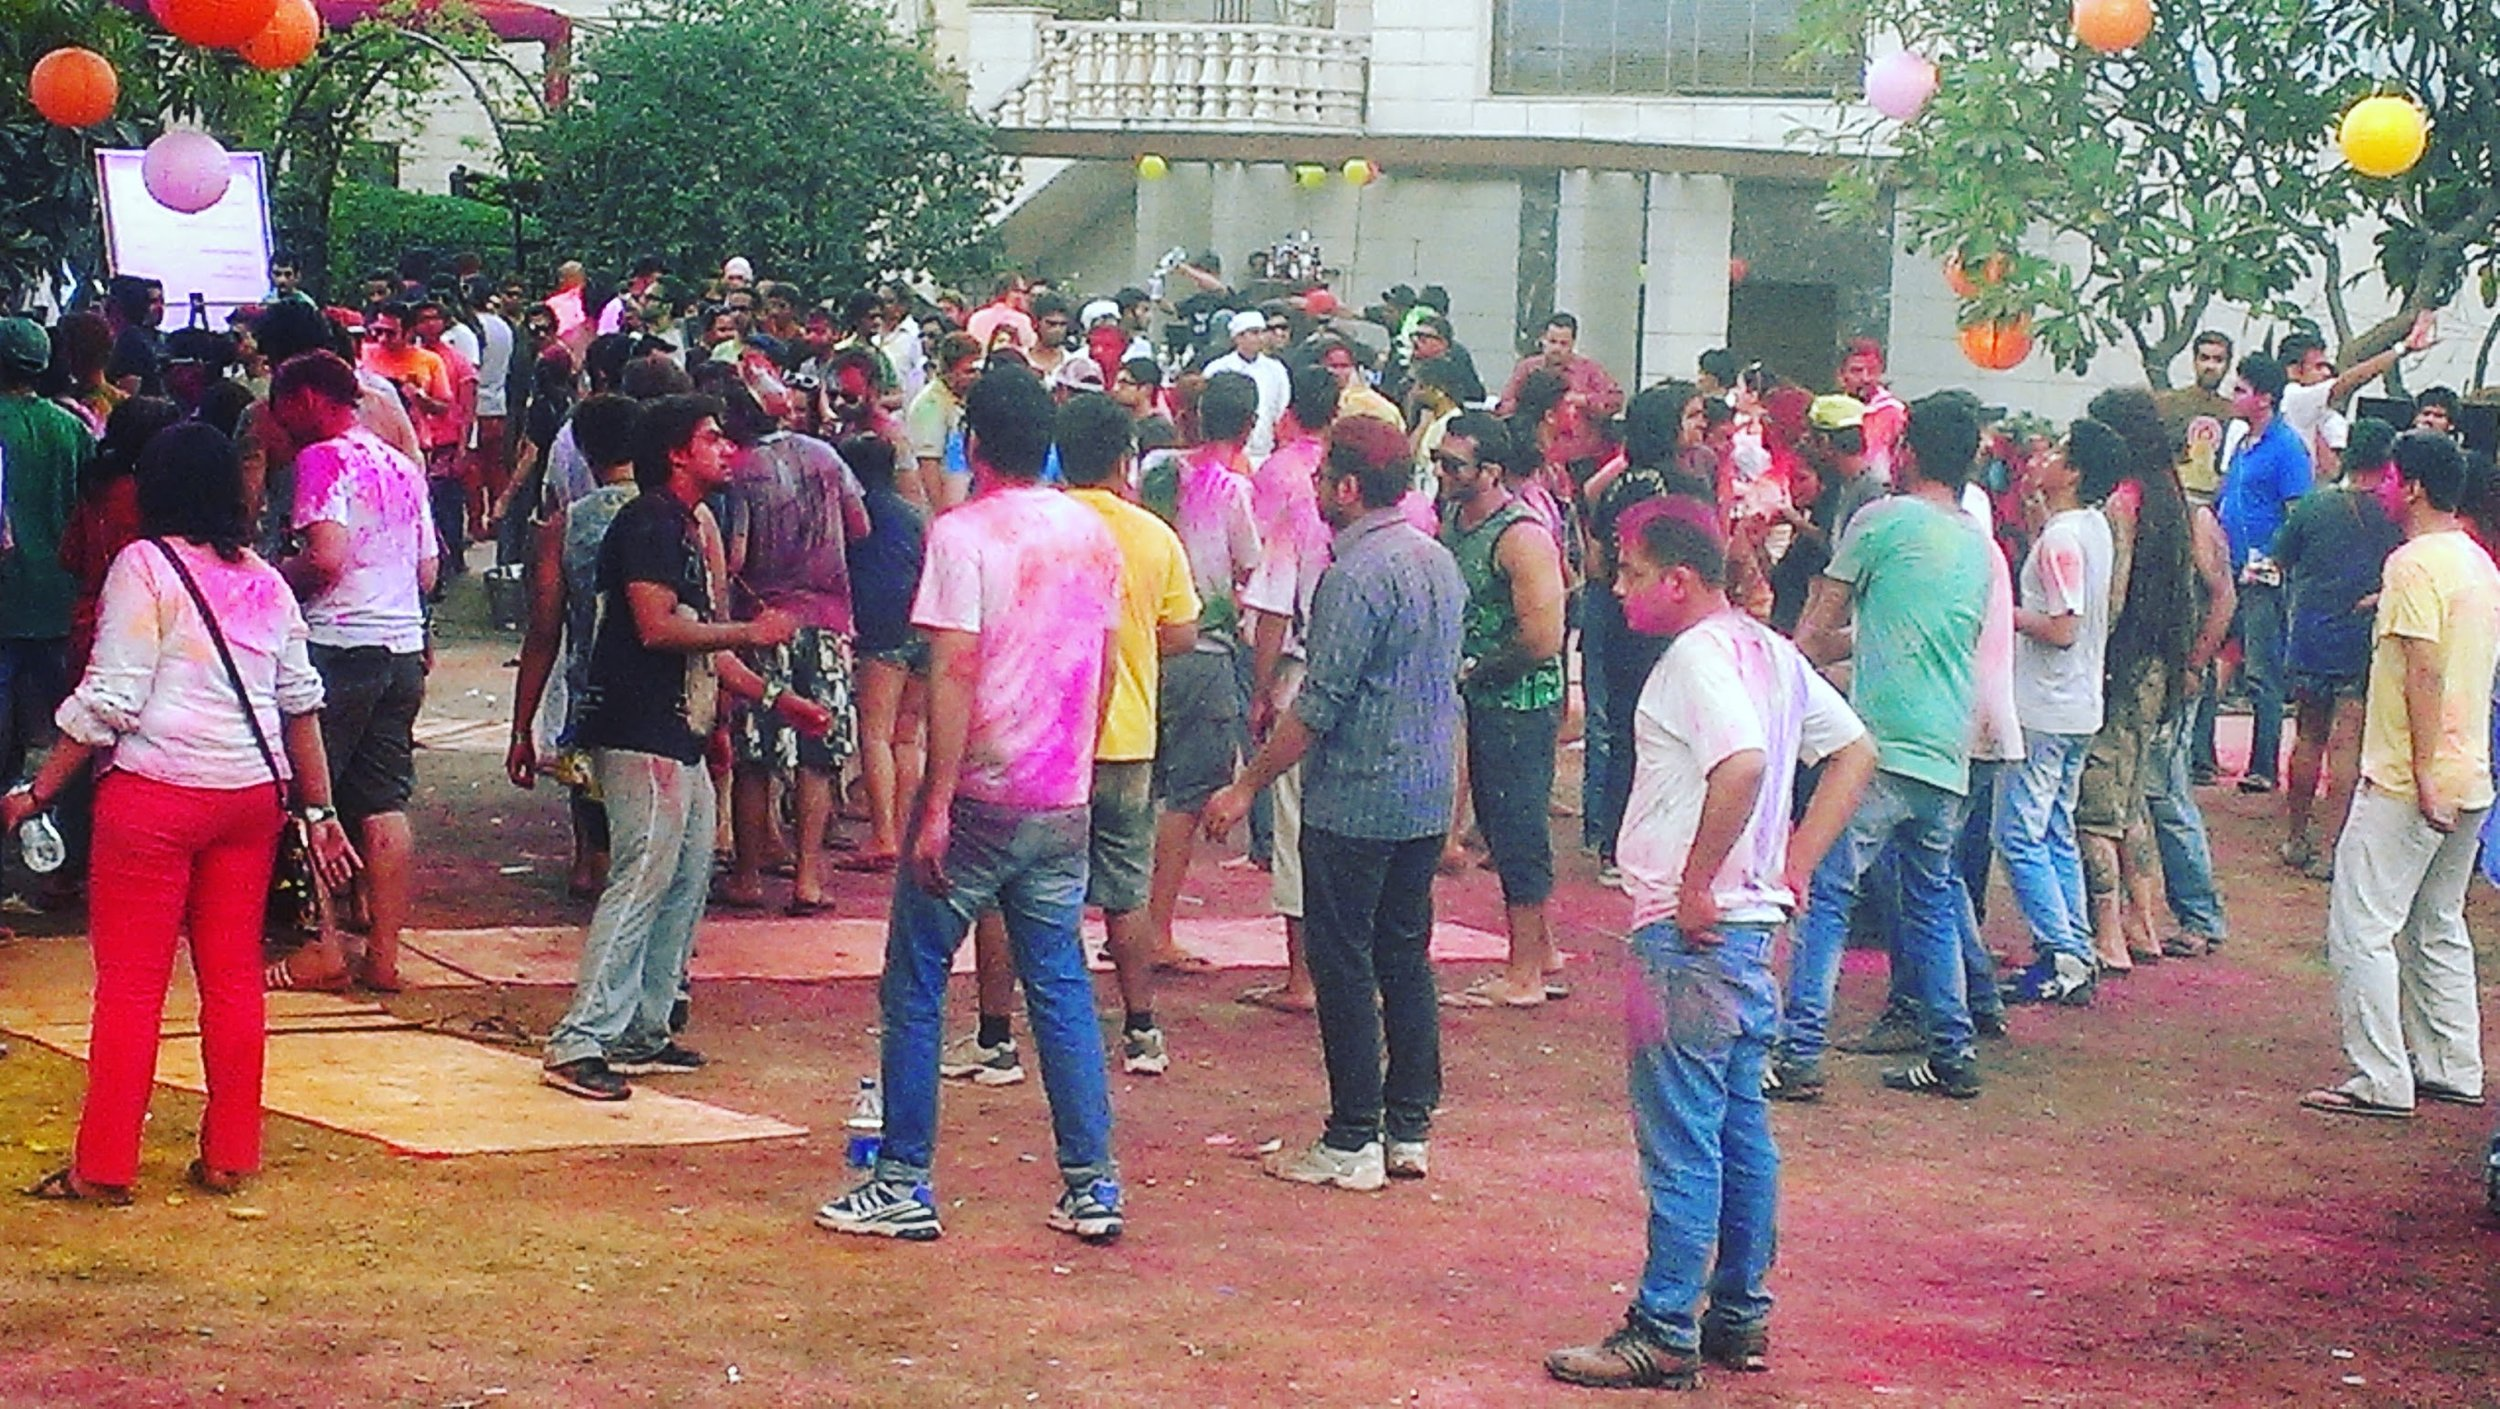 Minimizing other things to experience Holi